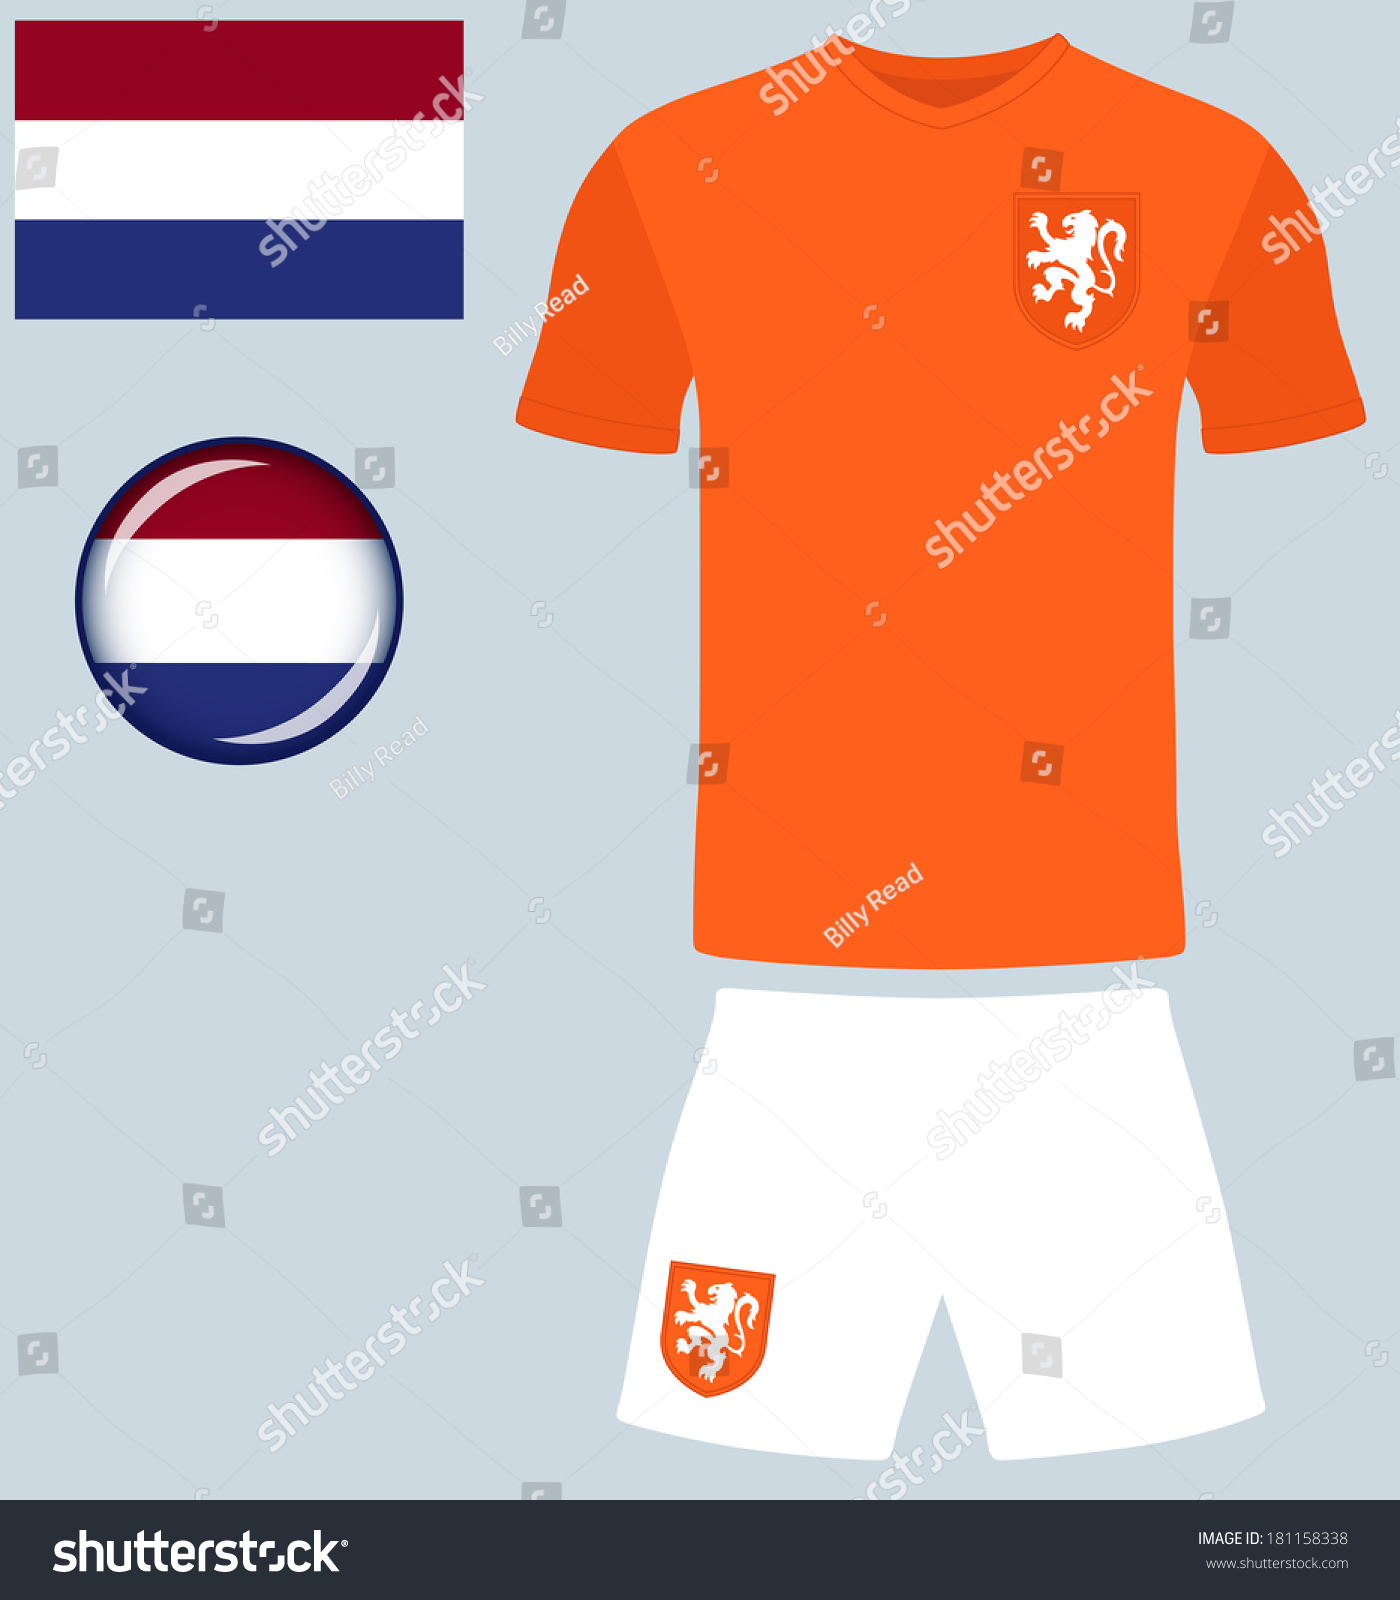 db2afee1329 Holland Football Jersey. Abstract vector image of the Netherlands Football  Team kit, along with